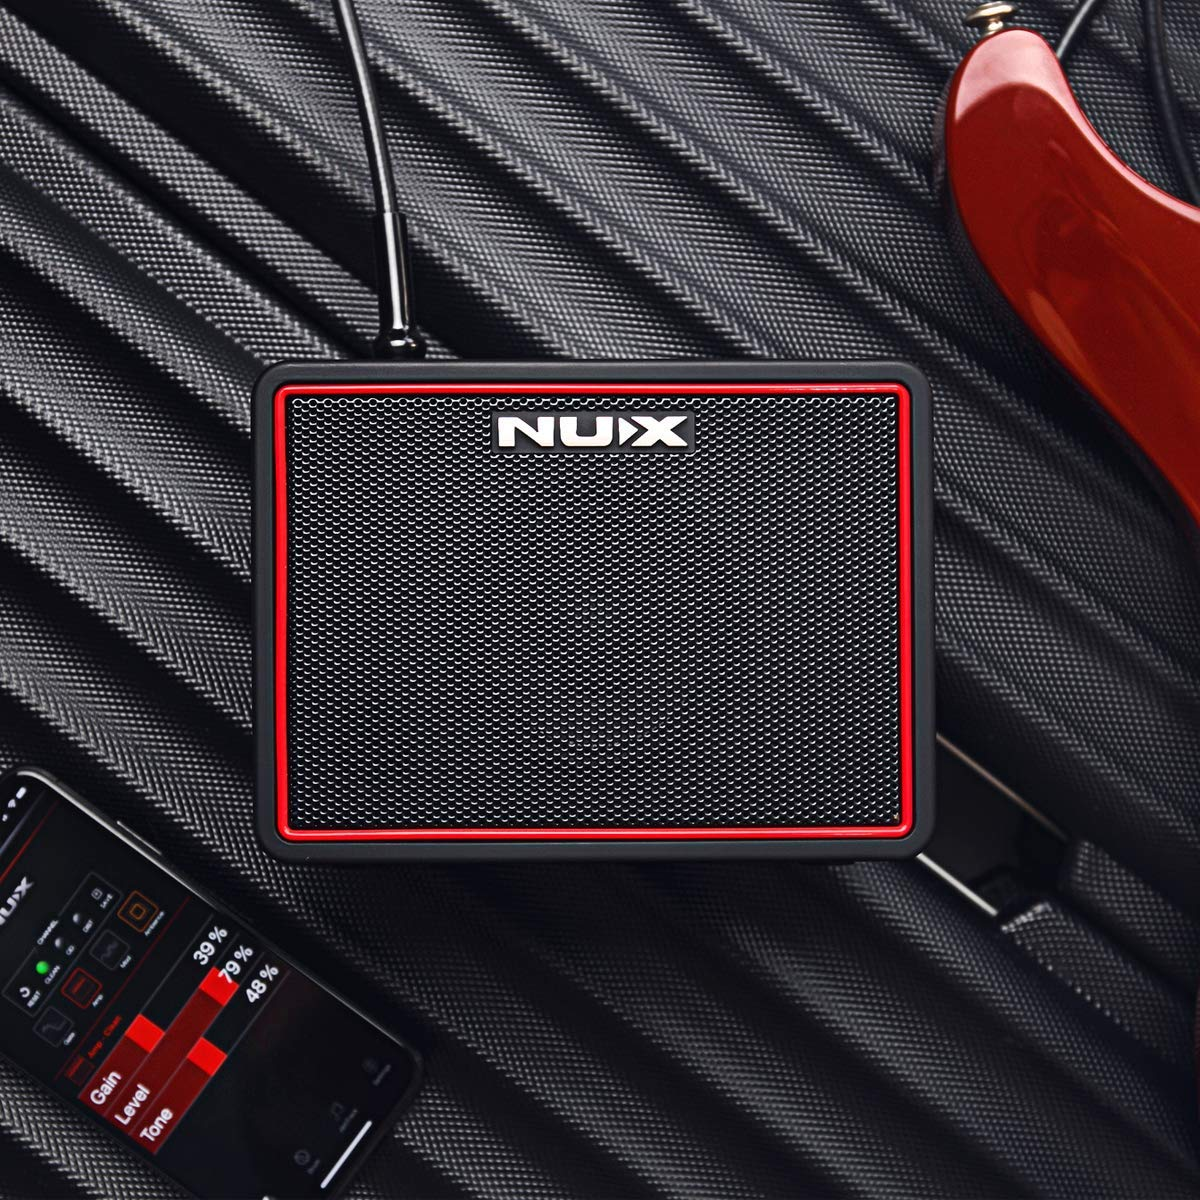 The NUX Mighty Lite BT Mini Amplifier laying flat